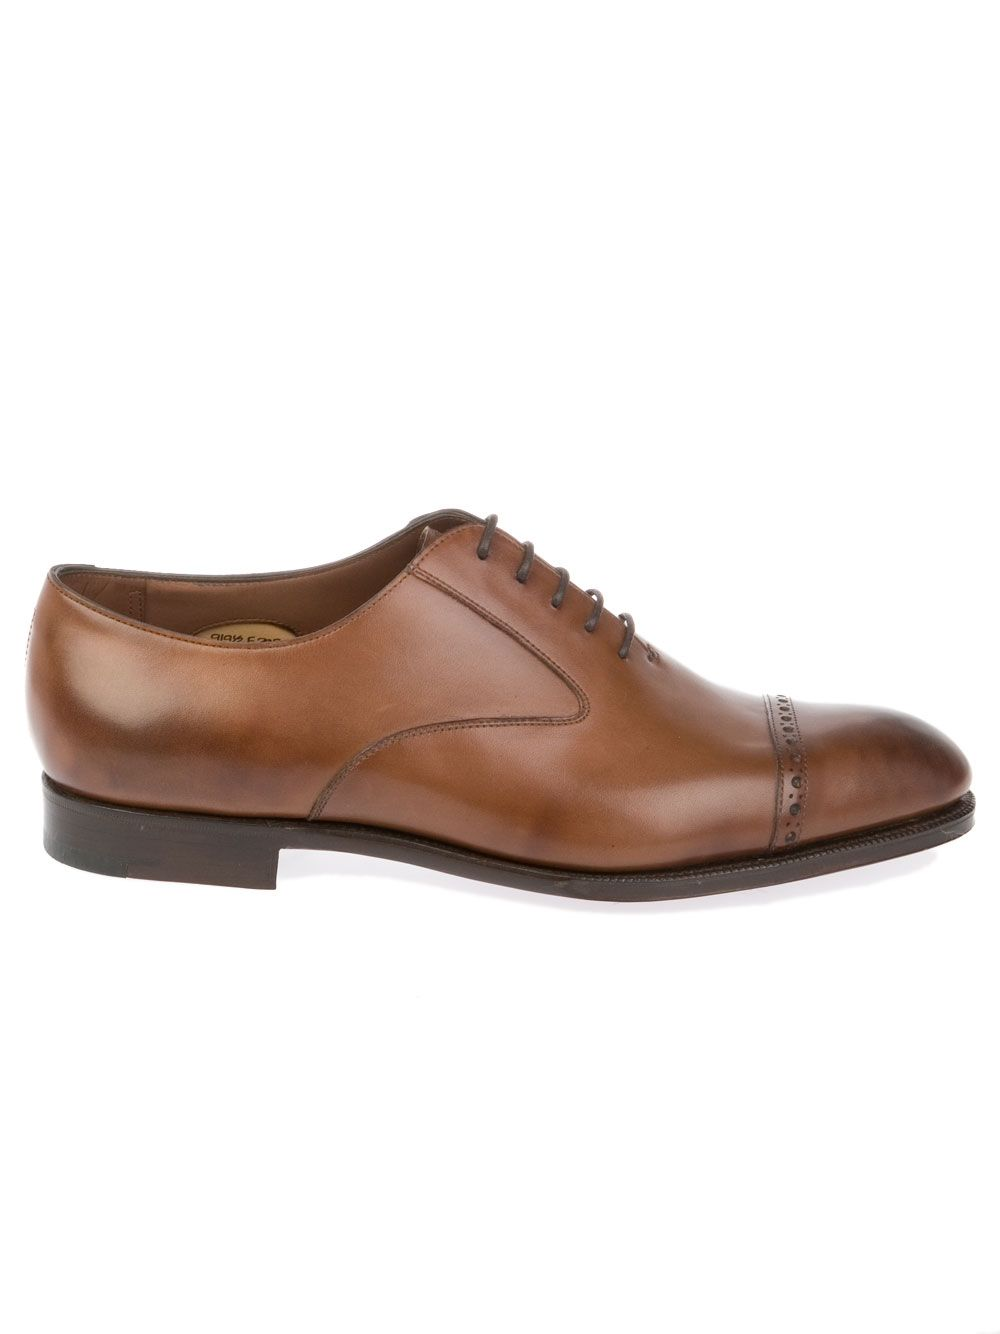 EDWARD GREEN MEN'S HYTHEBURNTPINEANTIQUE BROWN LEATHER LACE-UP SHOES